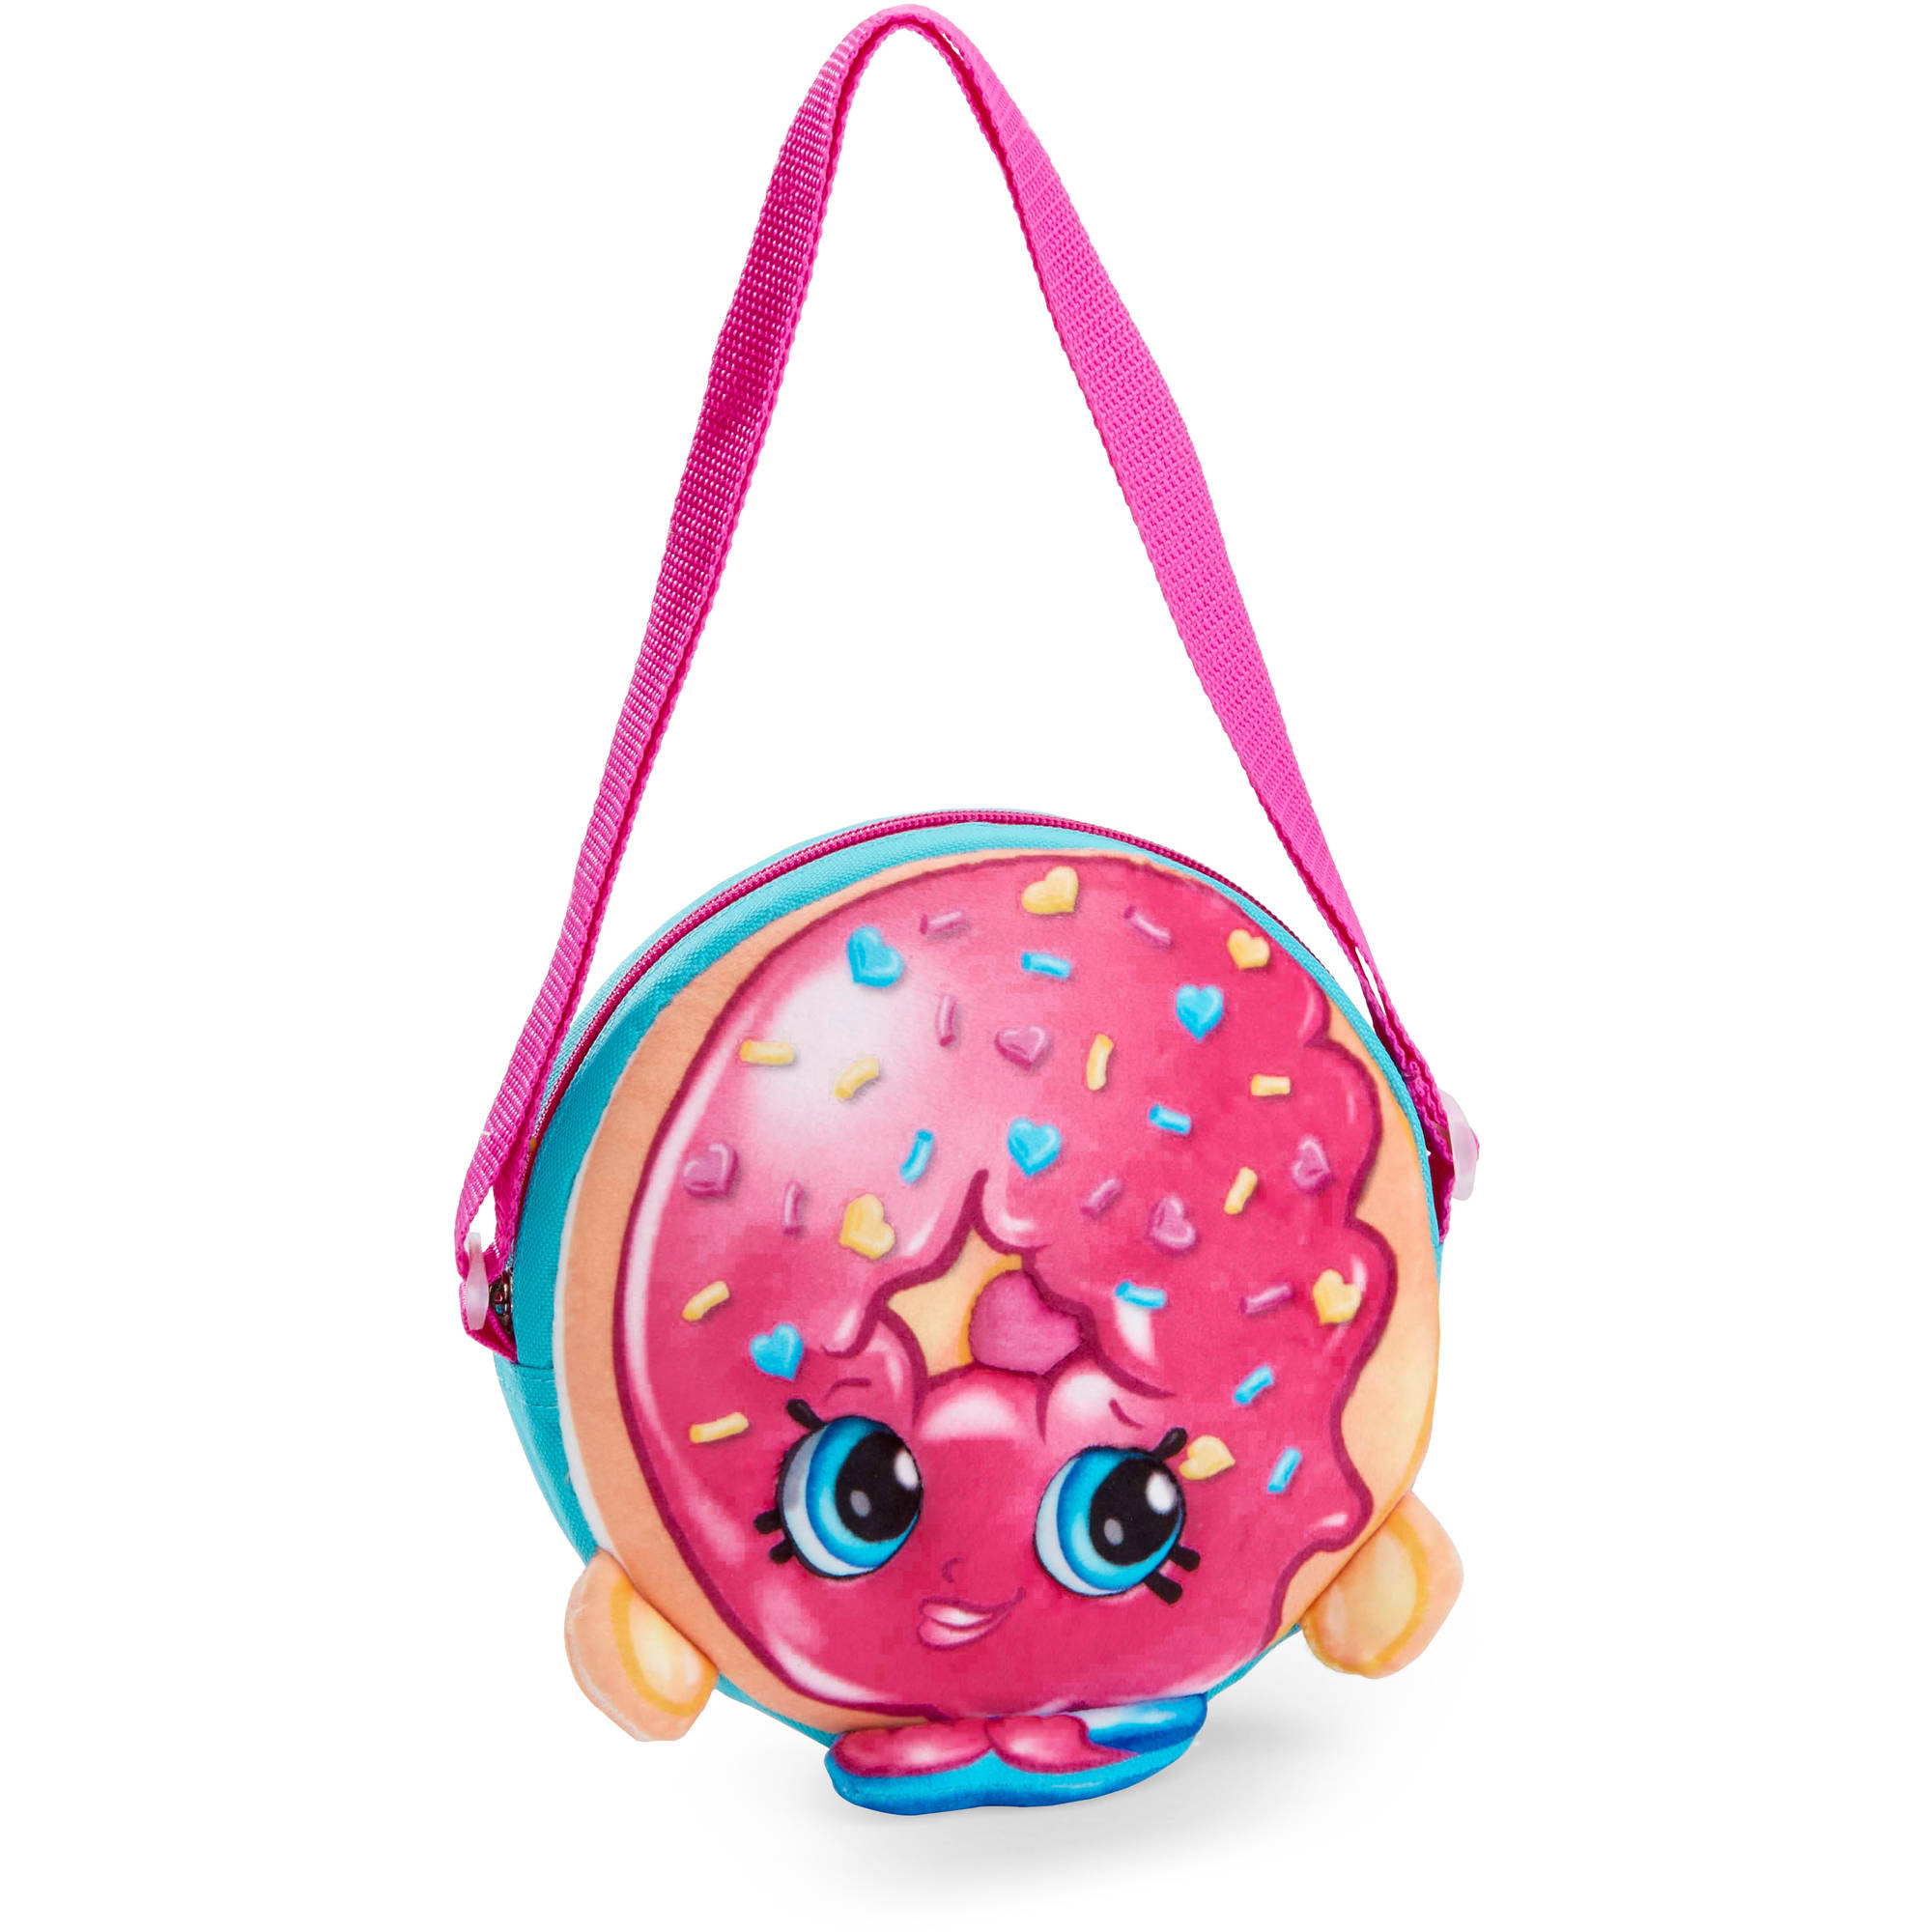 Shopkins Donut  Crossbody Bag